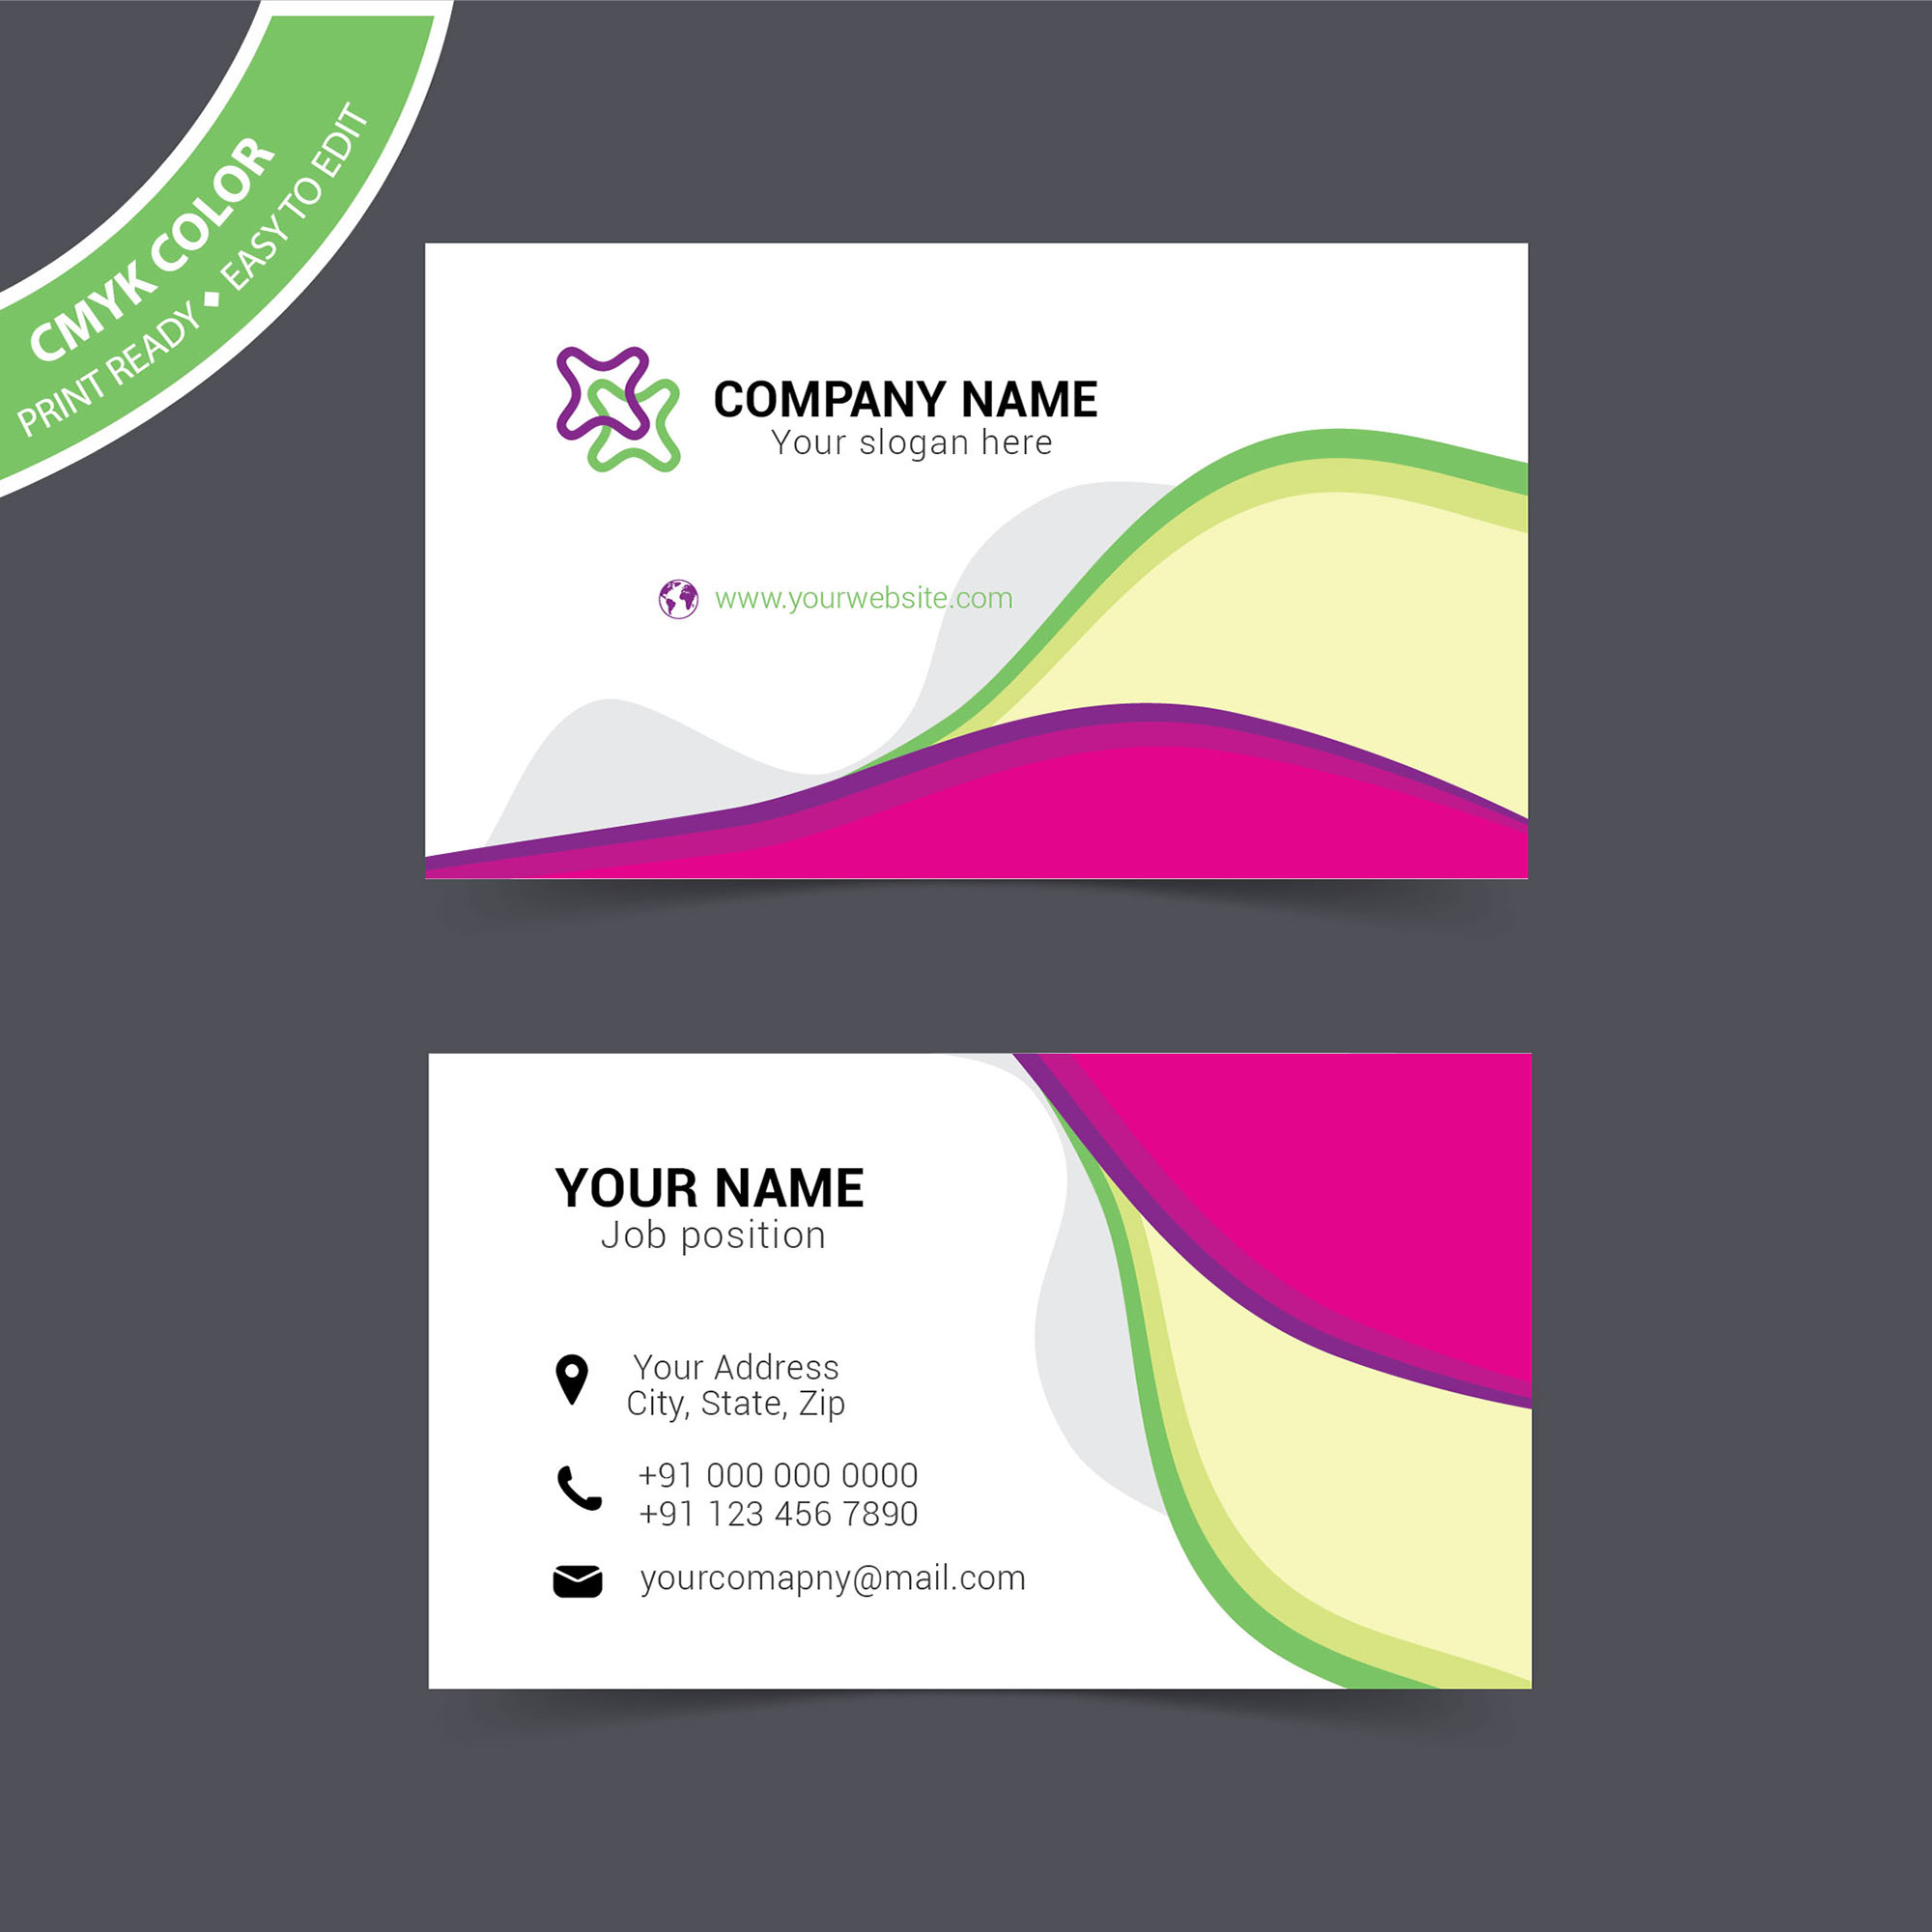 Visiting Card Design Sample Free Download - Wisxi.com